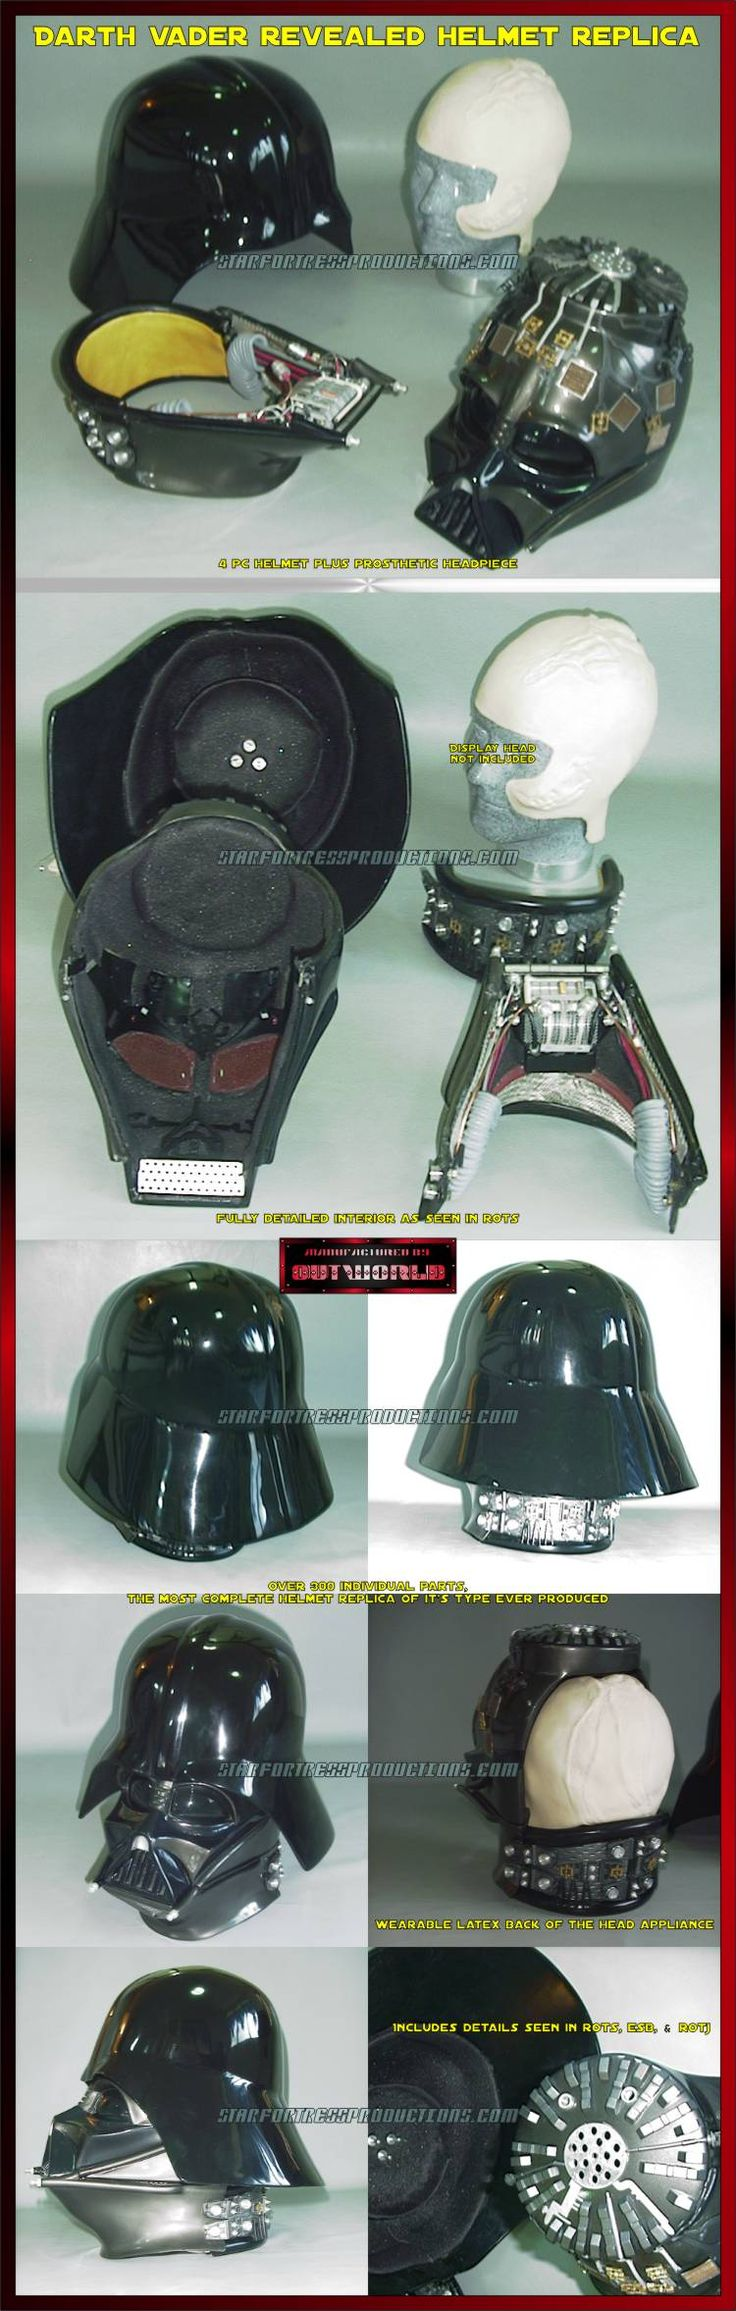 Darth Vader Helmet Blueprints Reveal His Inner Secrets - Bit Rebels